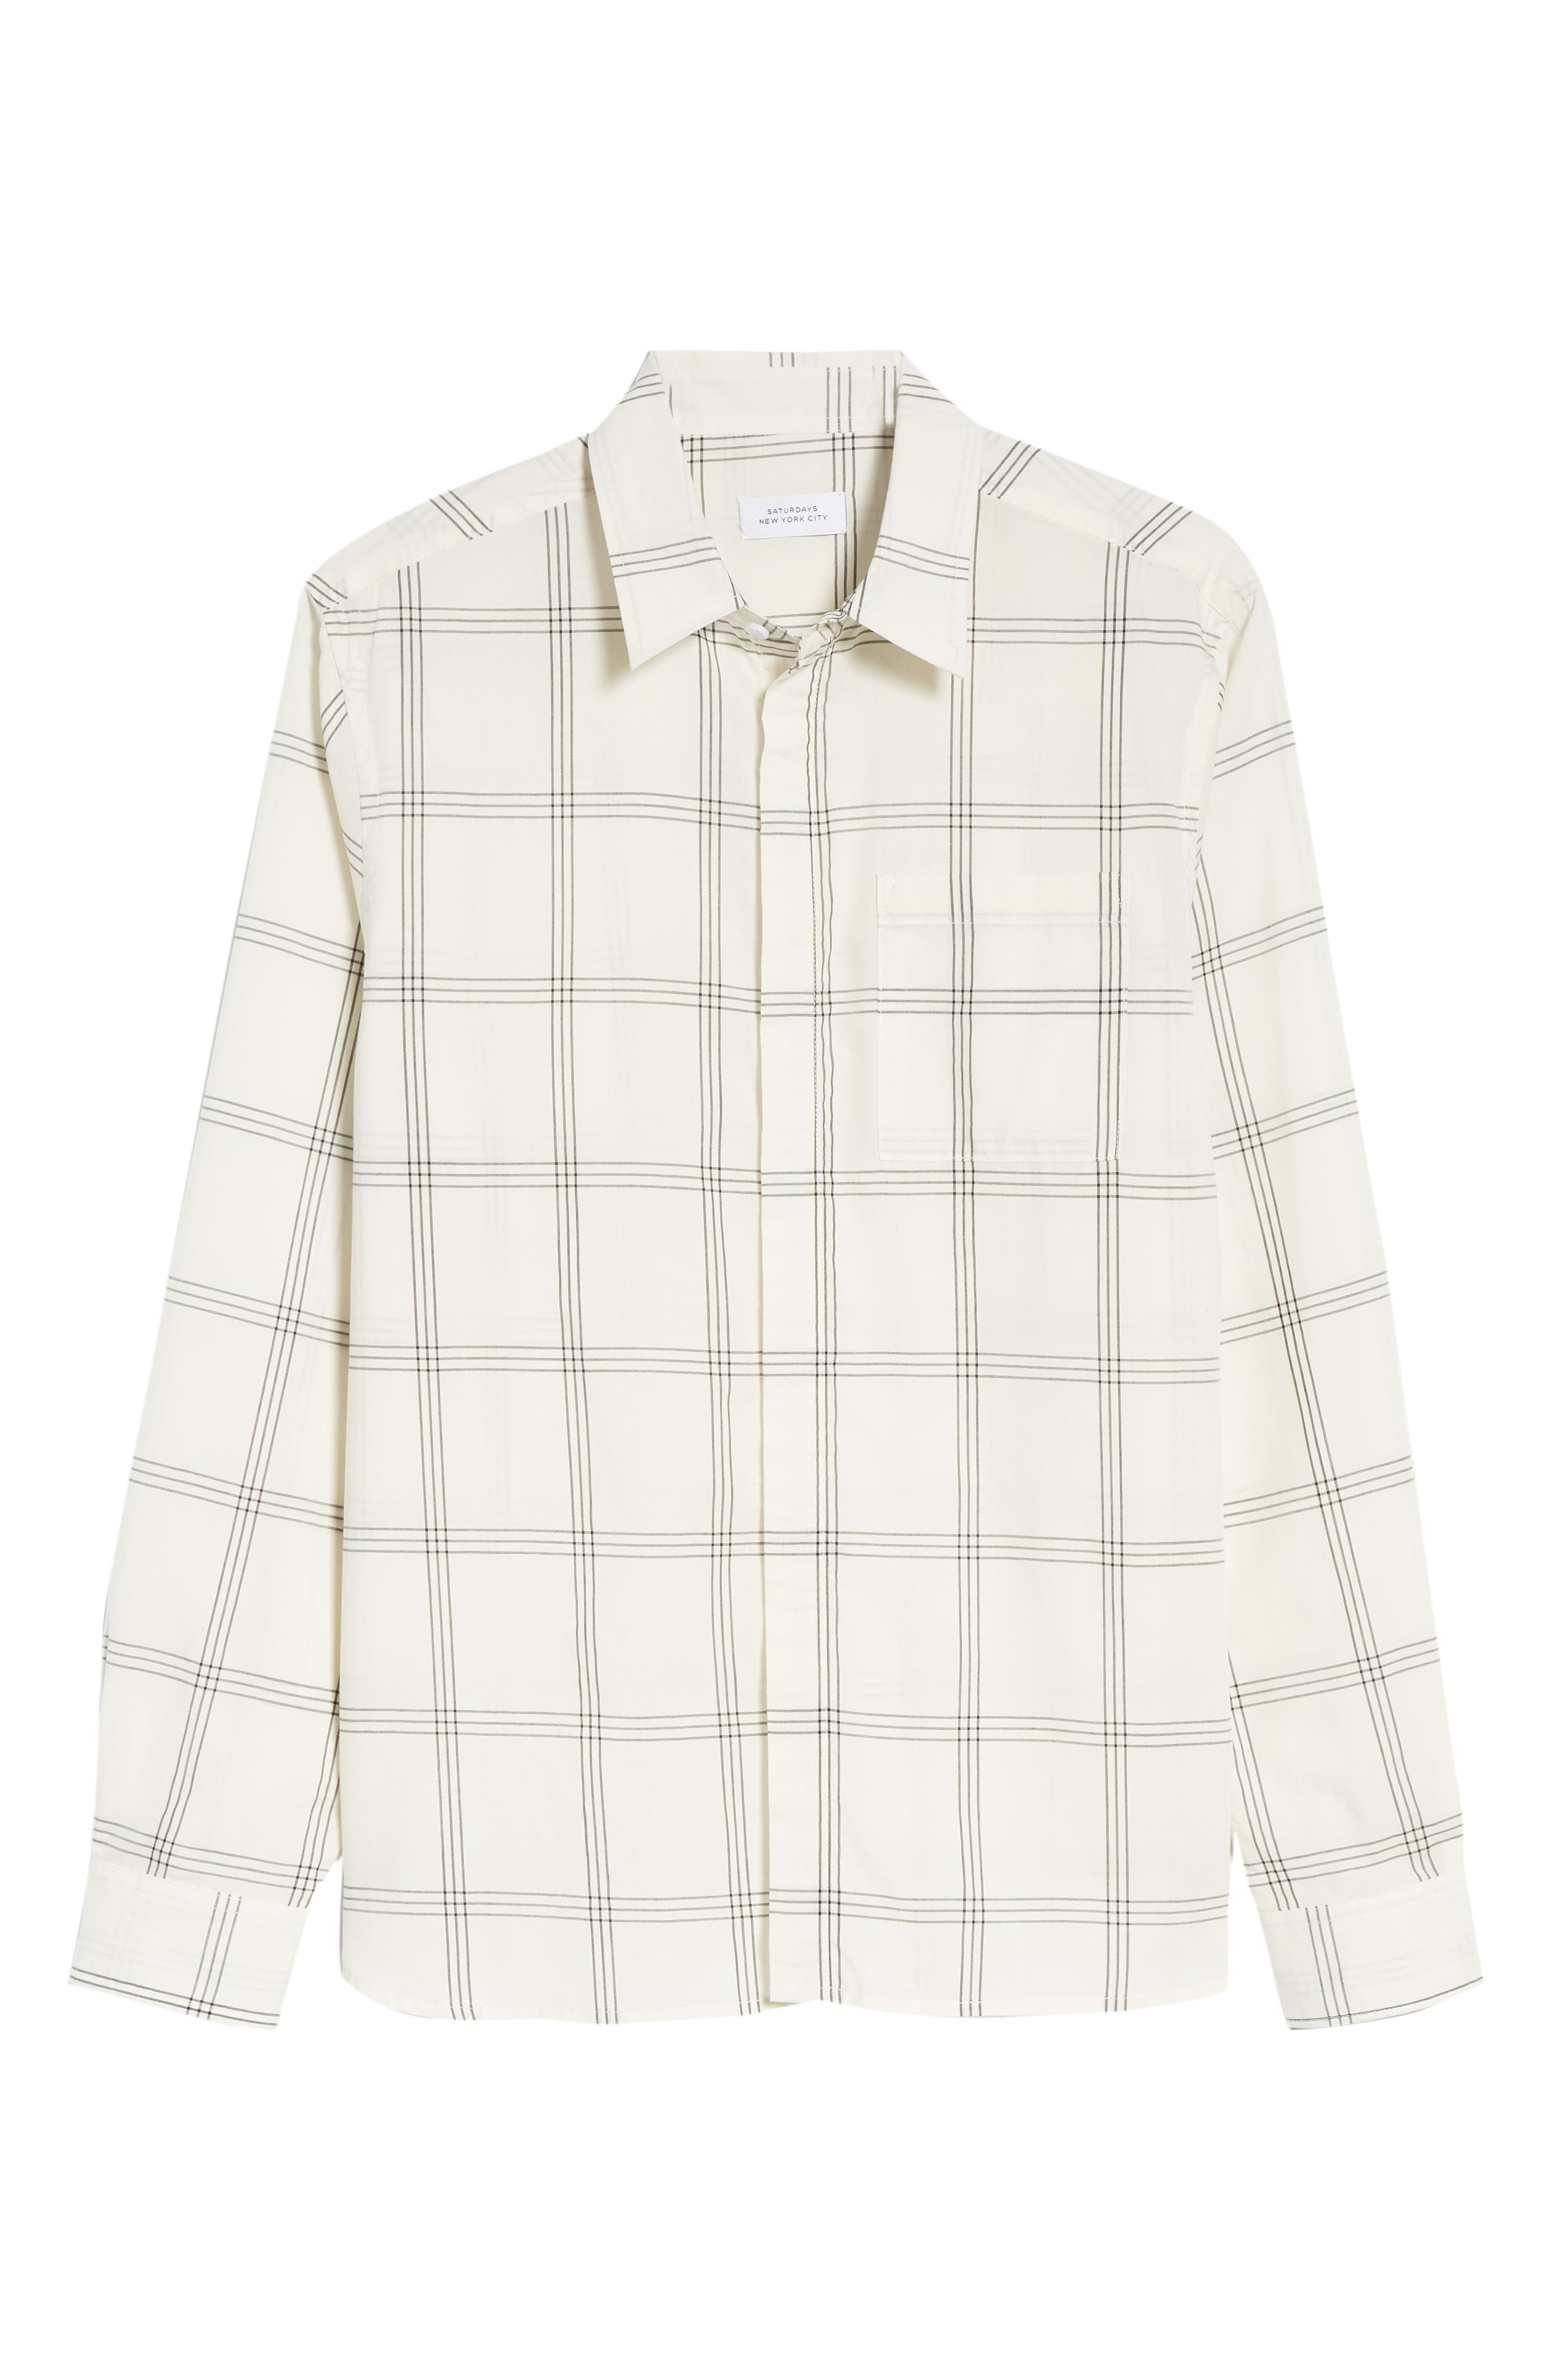 Mickey Windowpane Woven Shirt,                             Alternate thumbnail 6, color,                             WHITE